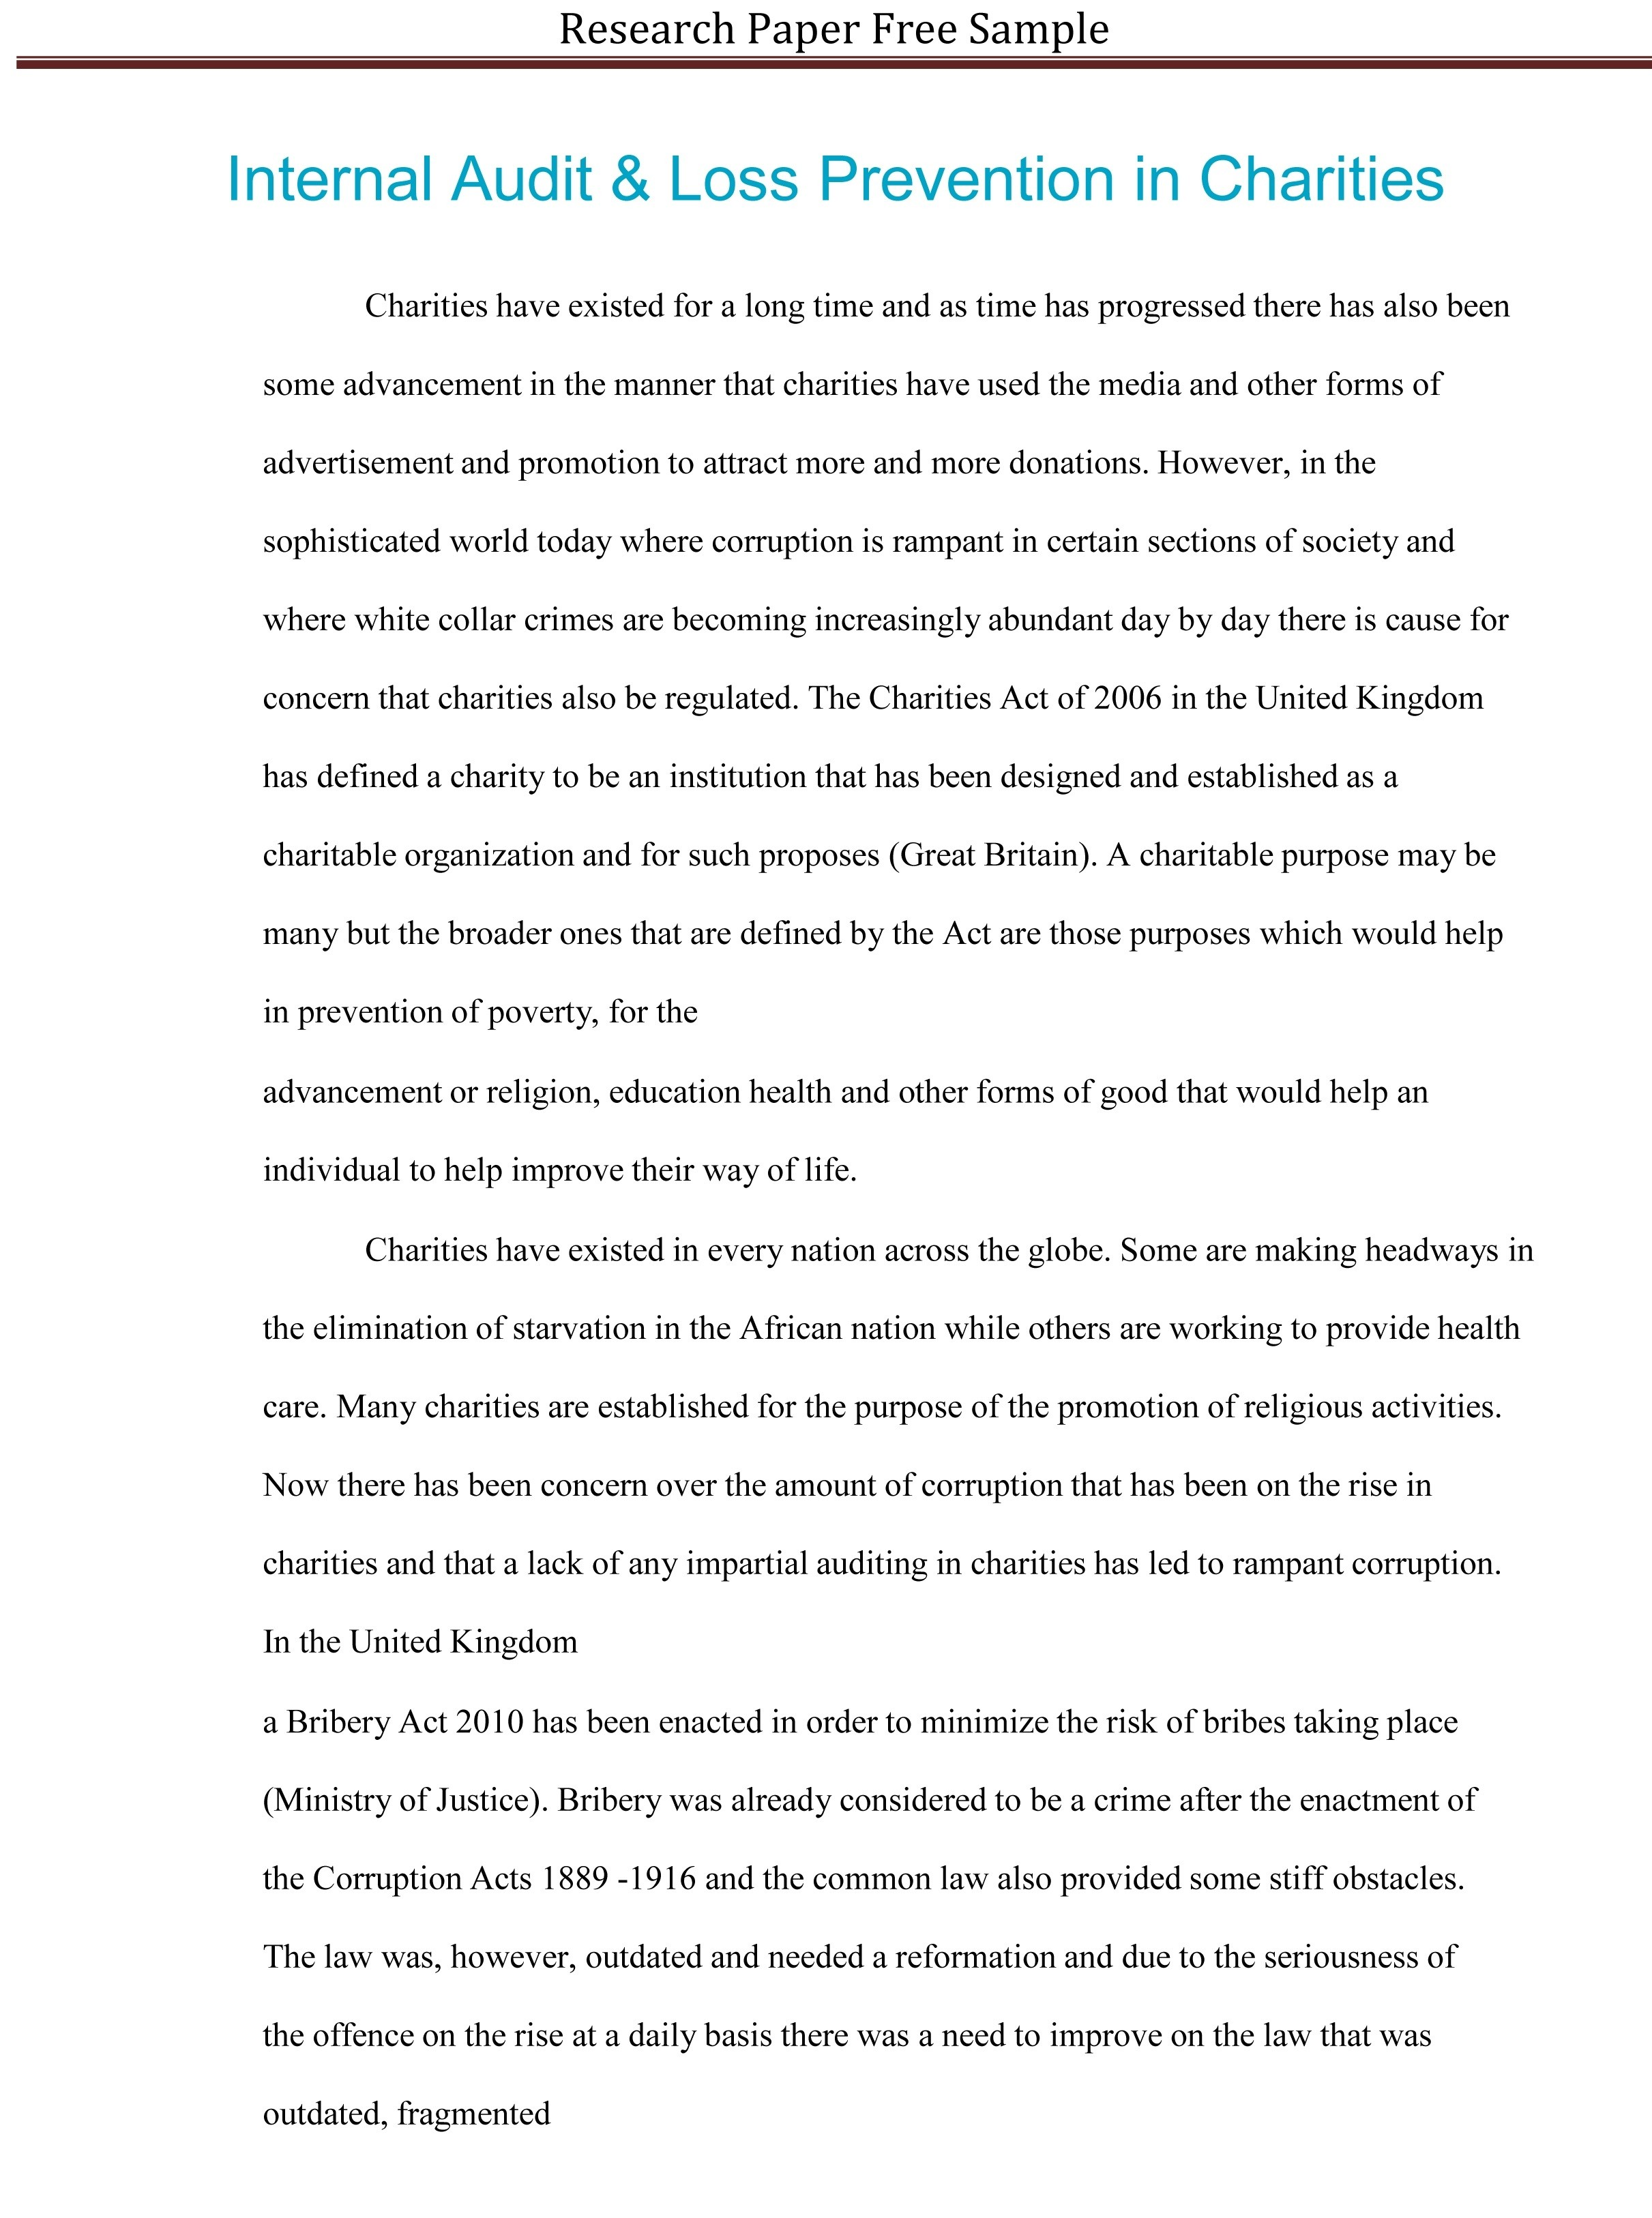 022 High School Research Paper Example Examples Of Essay Writings And Archaicawful Sample Dropout Full